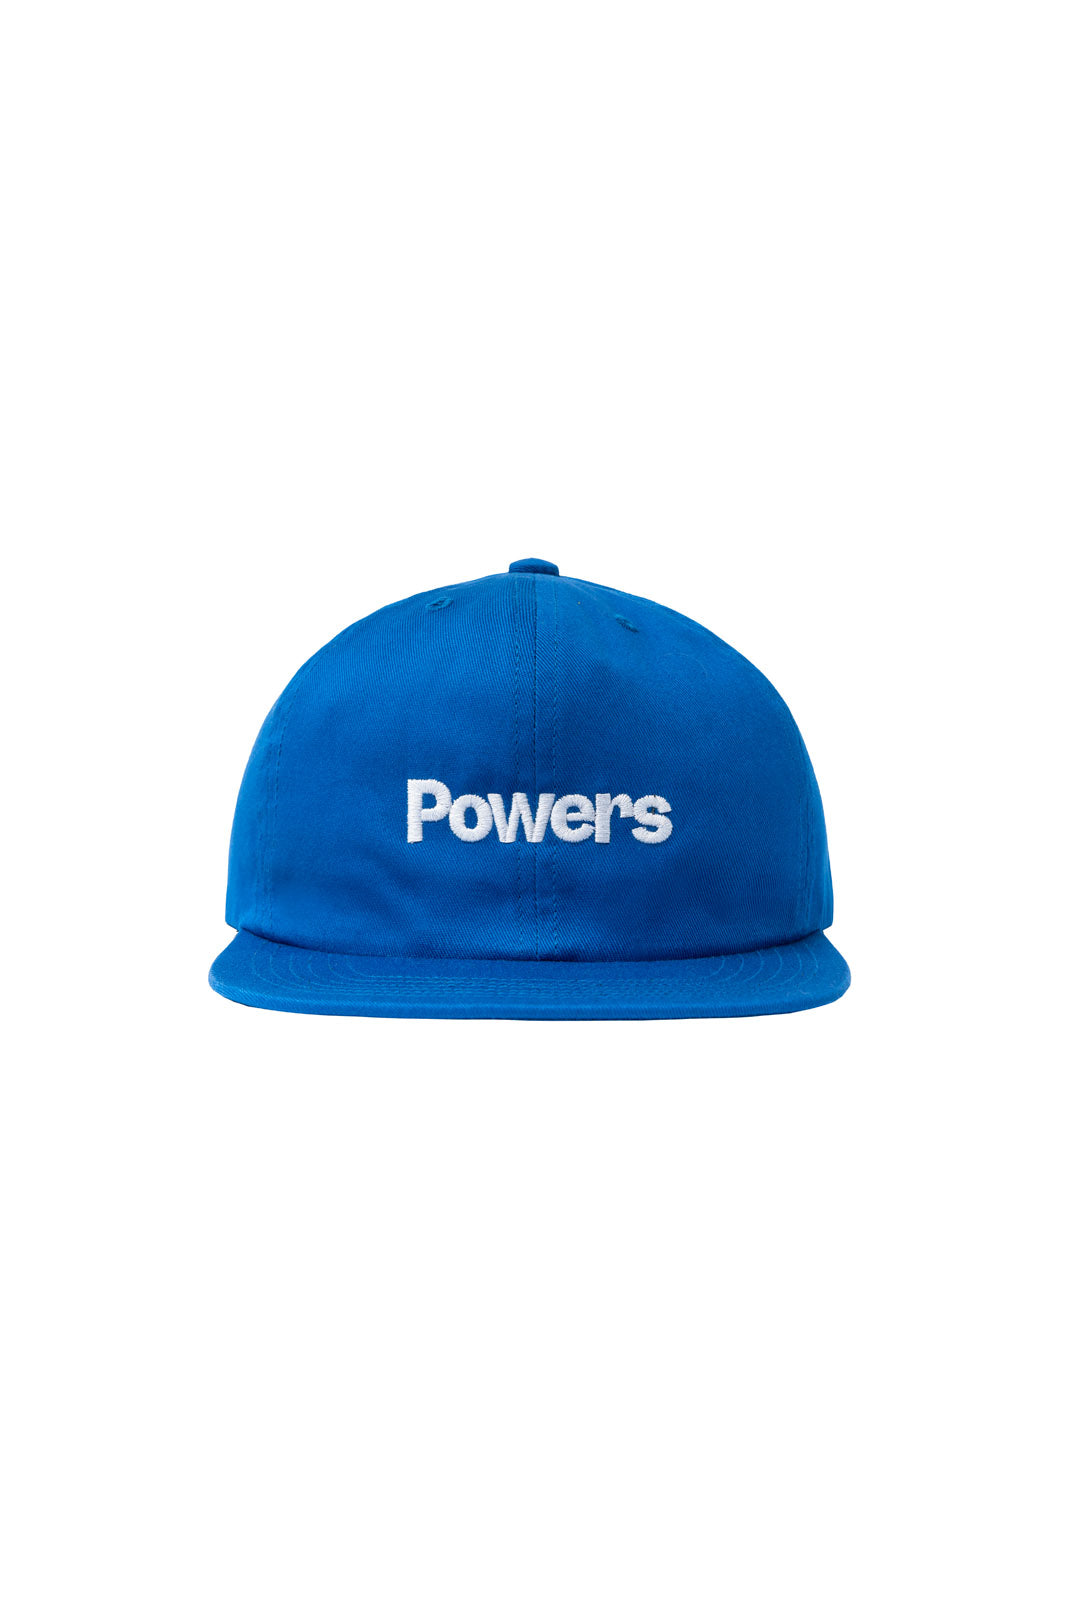 POWERS SUPPLY HATS LOGO 6 PANEL CAP - BLUE